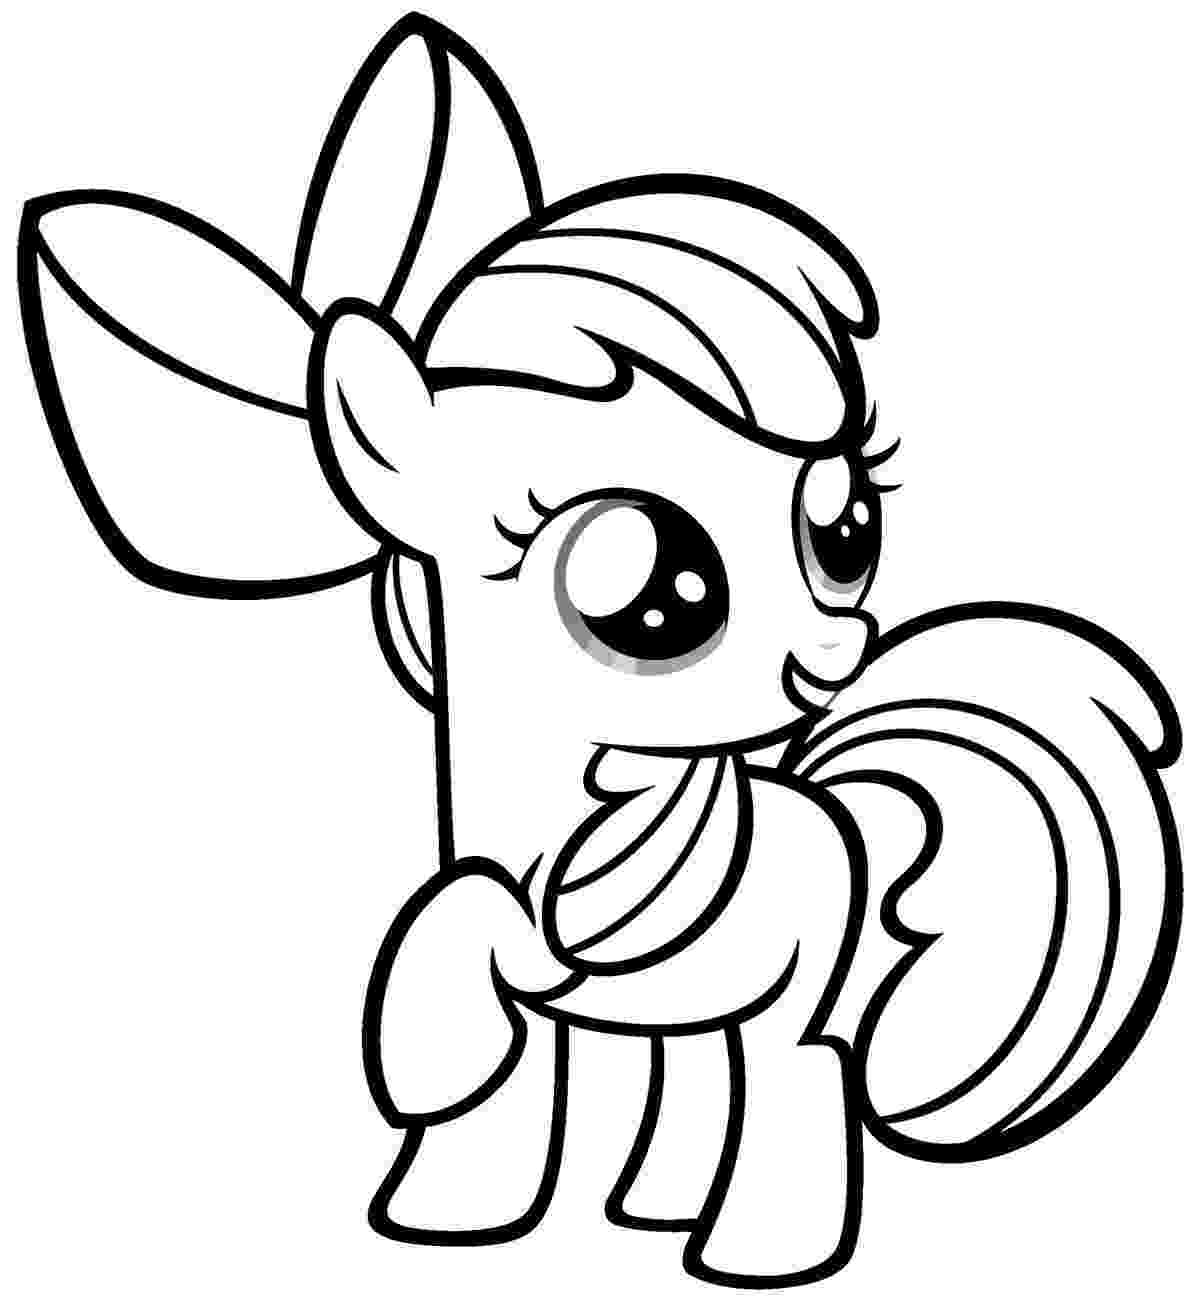 free printable my little pony free printable my little pony coloring pages for kids my little free printable pony